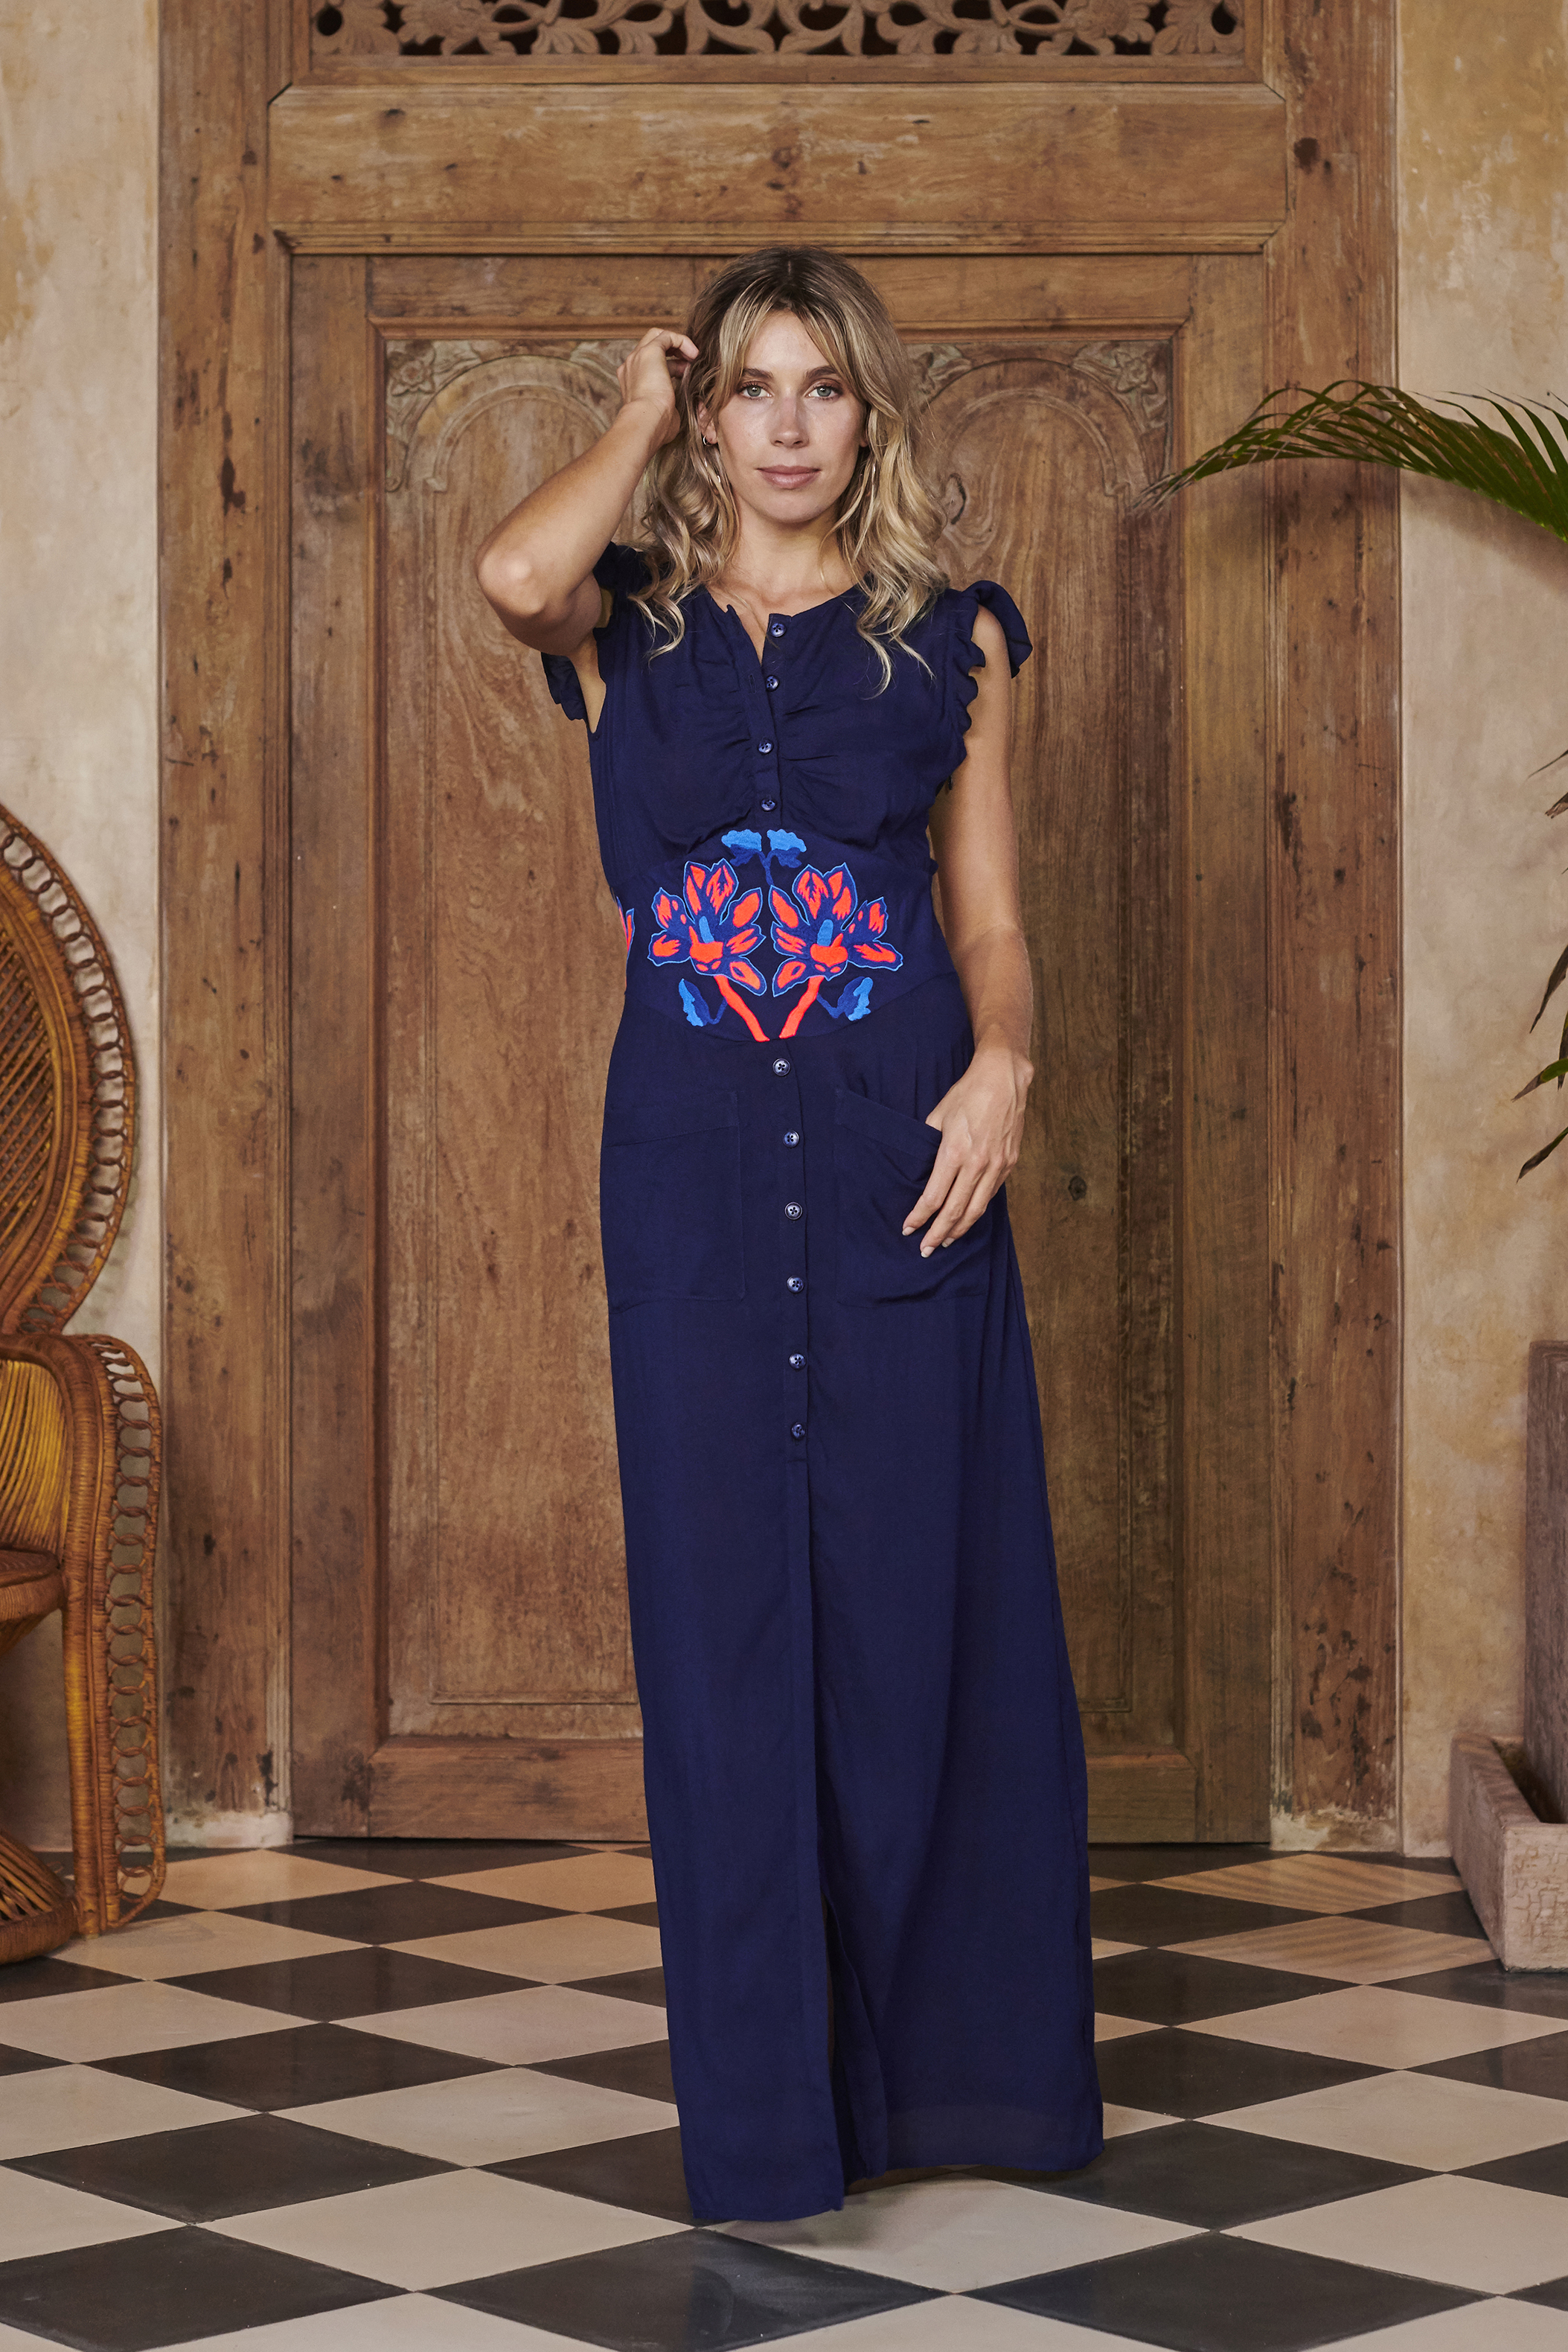 Queen Dress in Navy by Akosée on curated-crowd.com